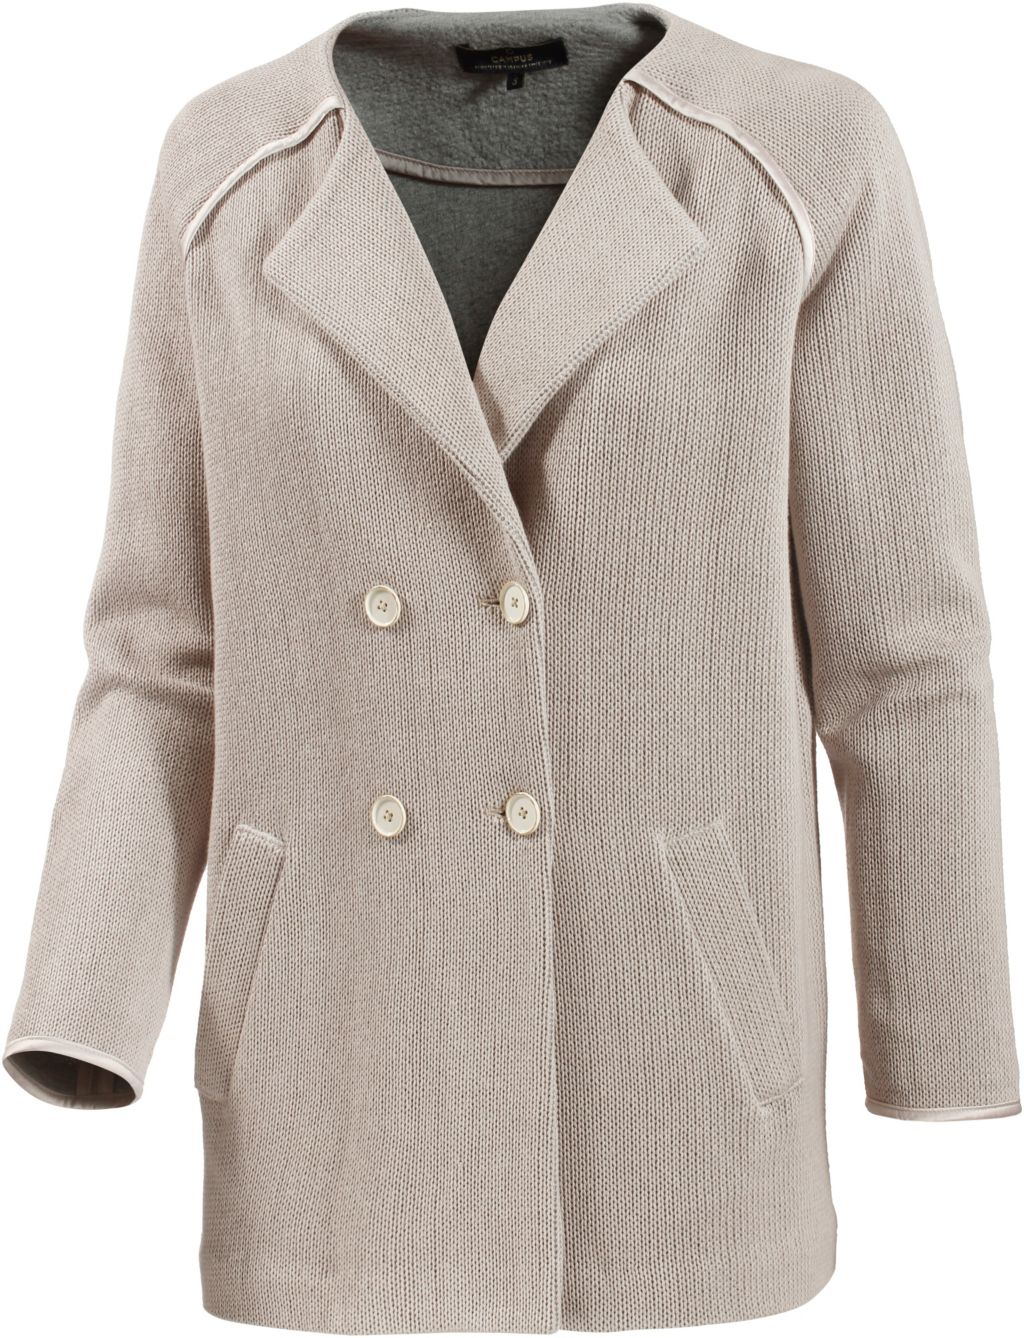 Campus Strickmantel Damen in beige, Größe L